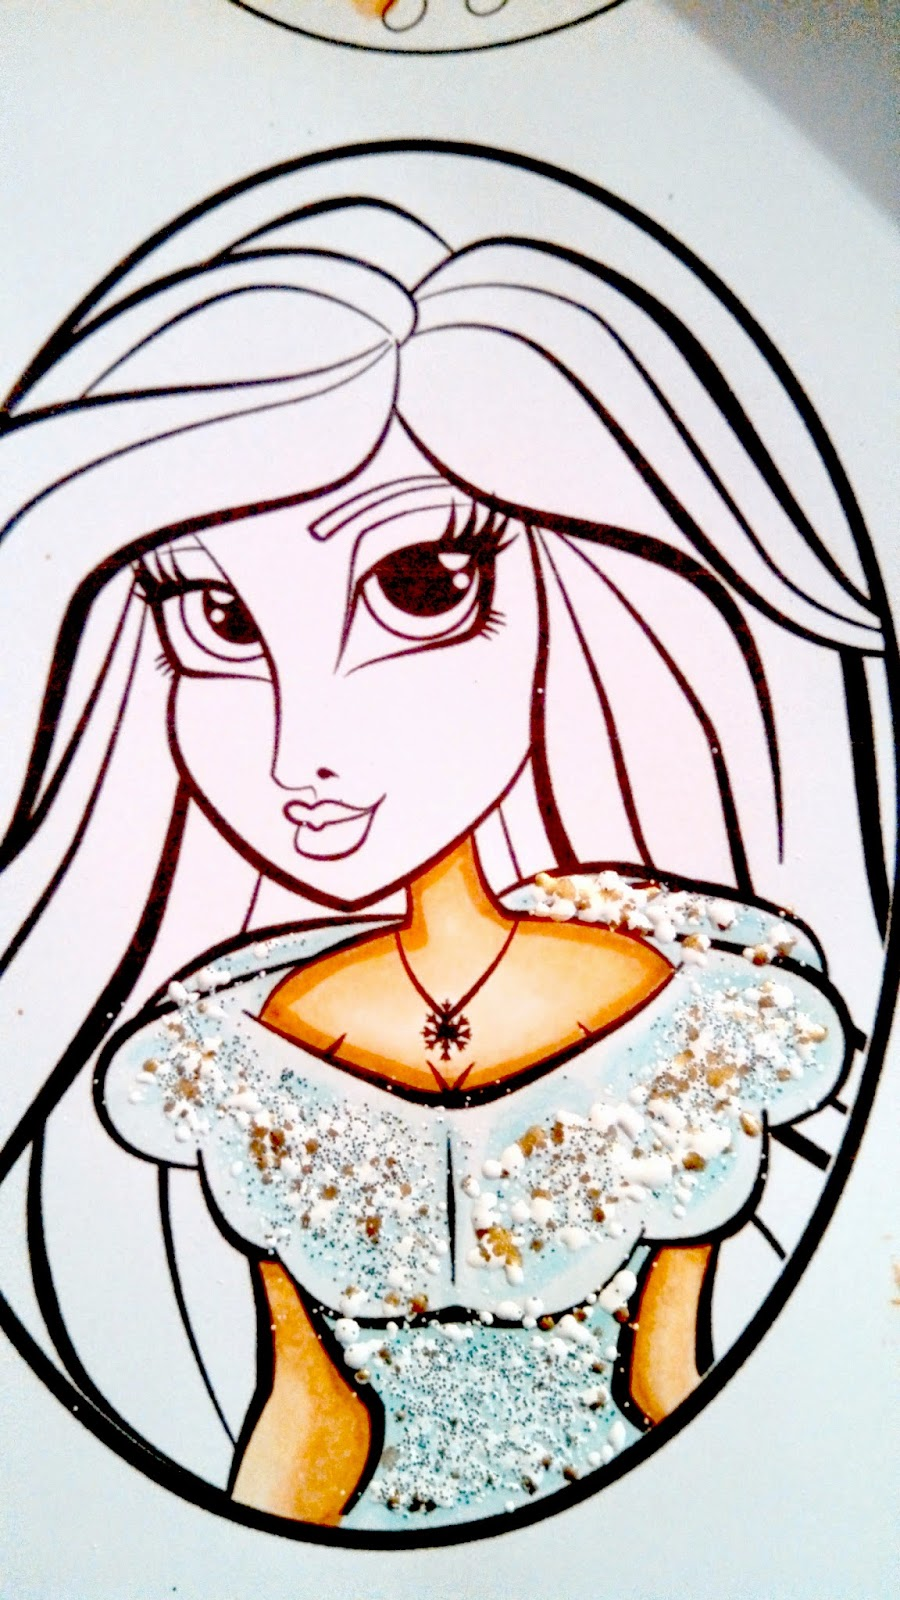 Irenes Card Creations Skin Coloring Tutorial With